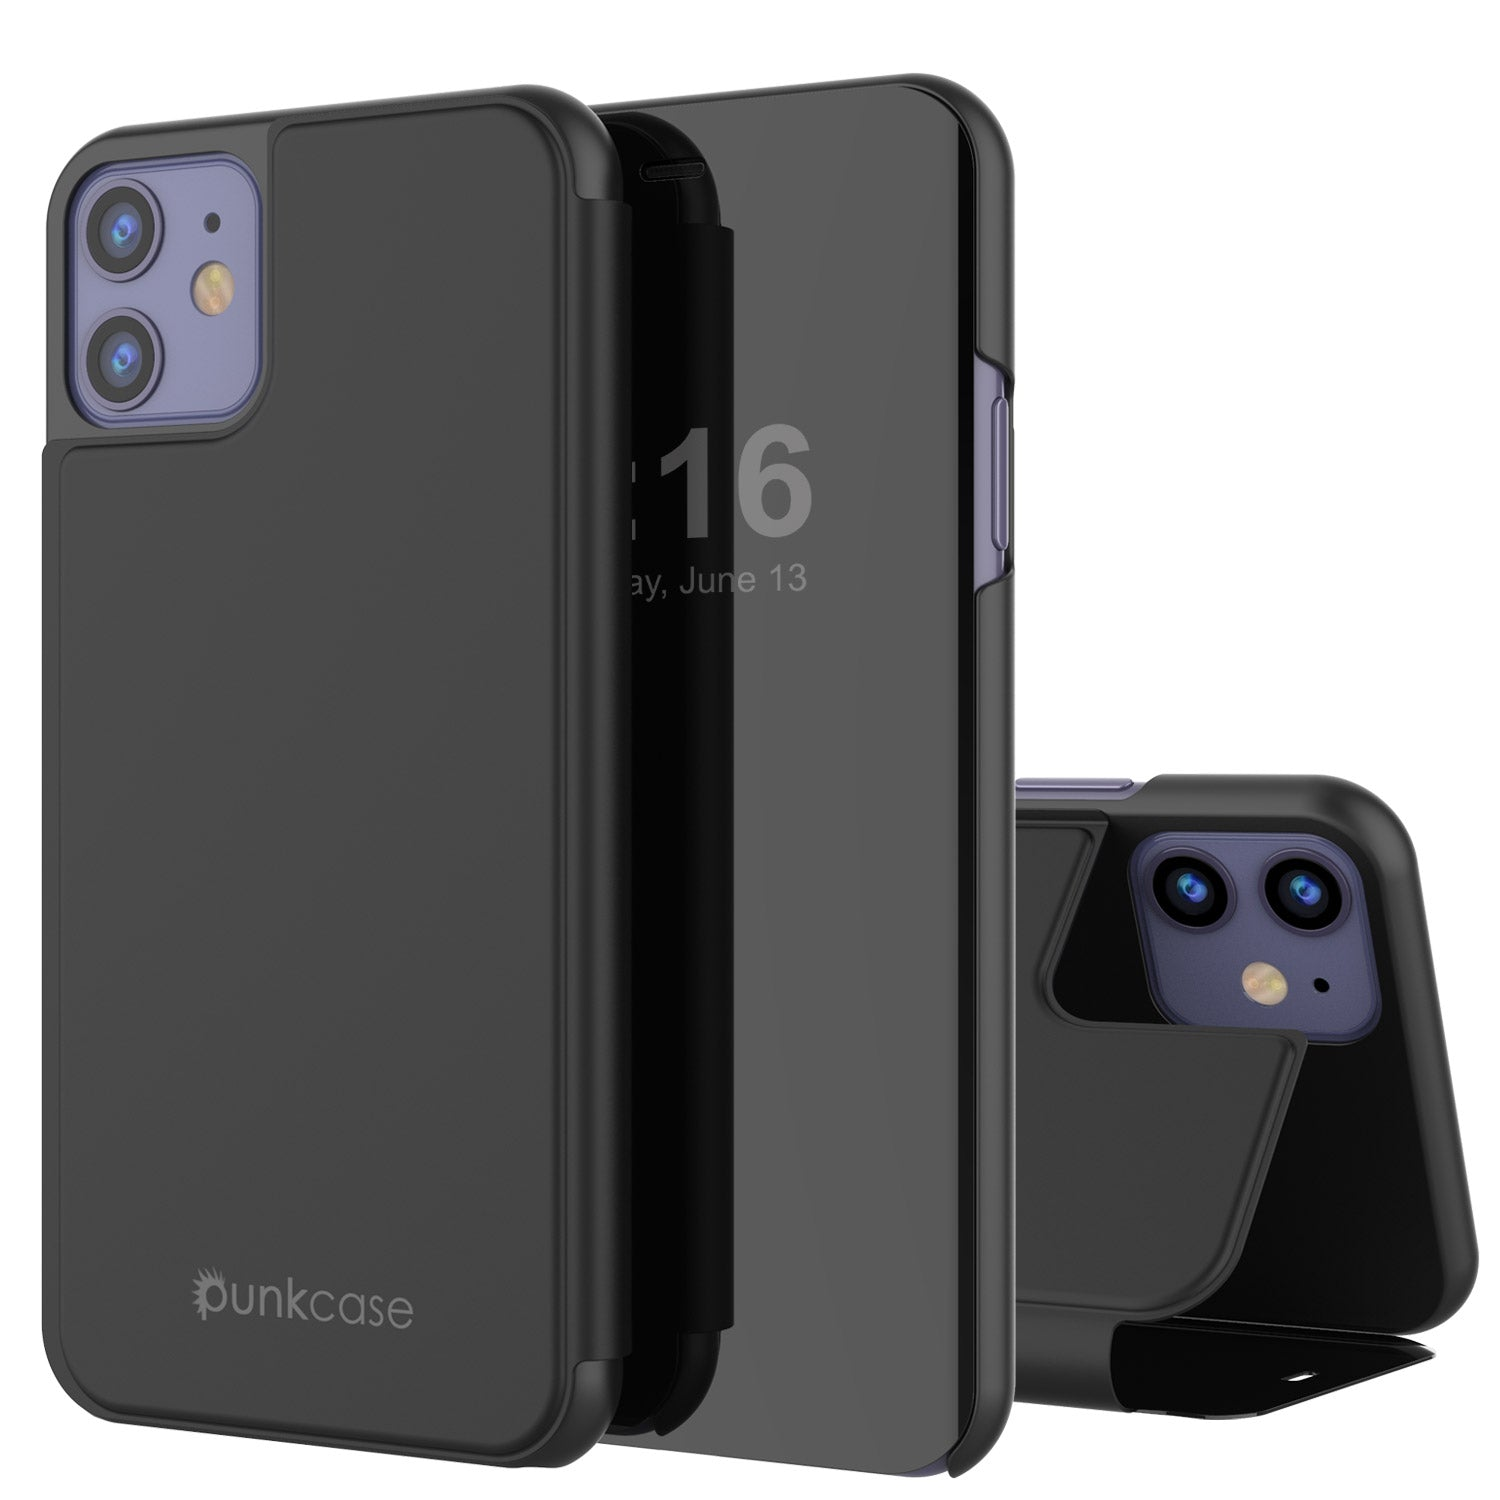 Punkcase iPhone 11 / XI Reflector Case Protective Flip Cover [Black]